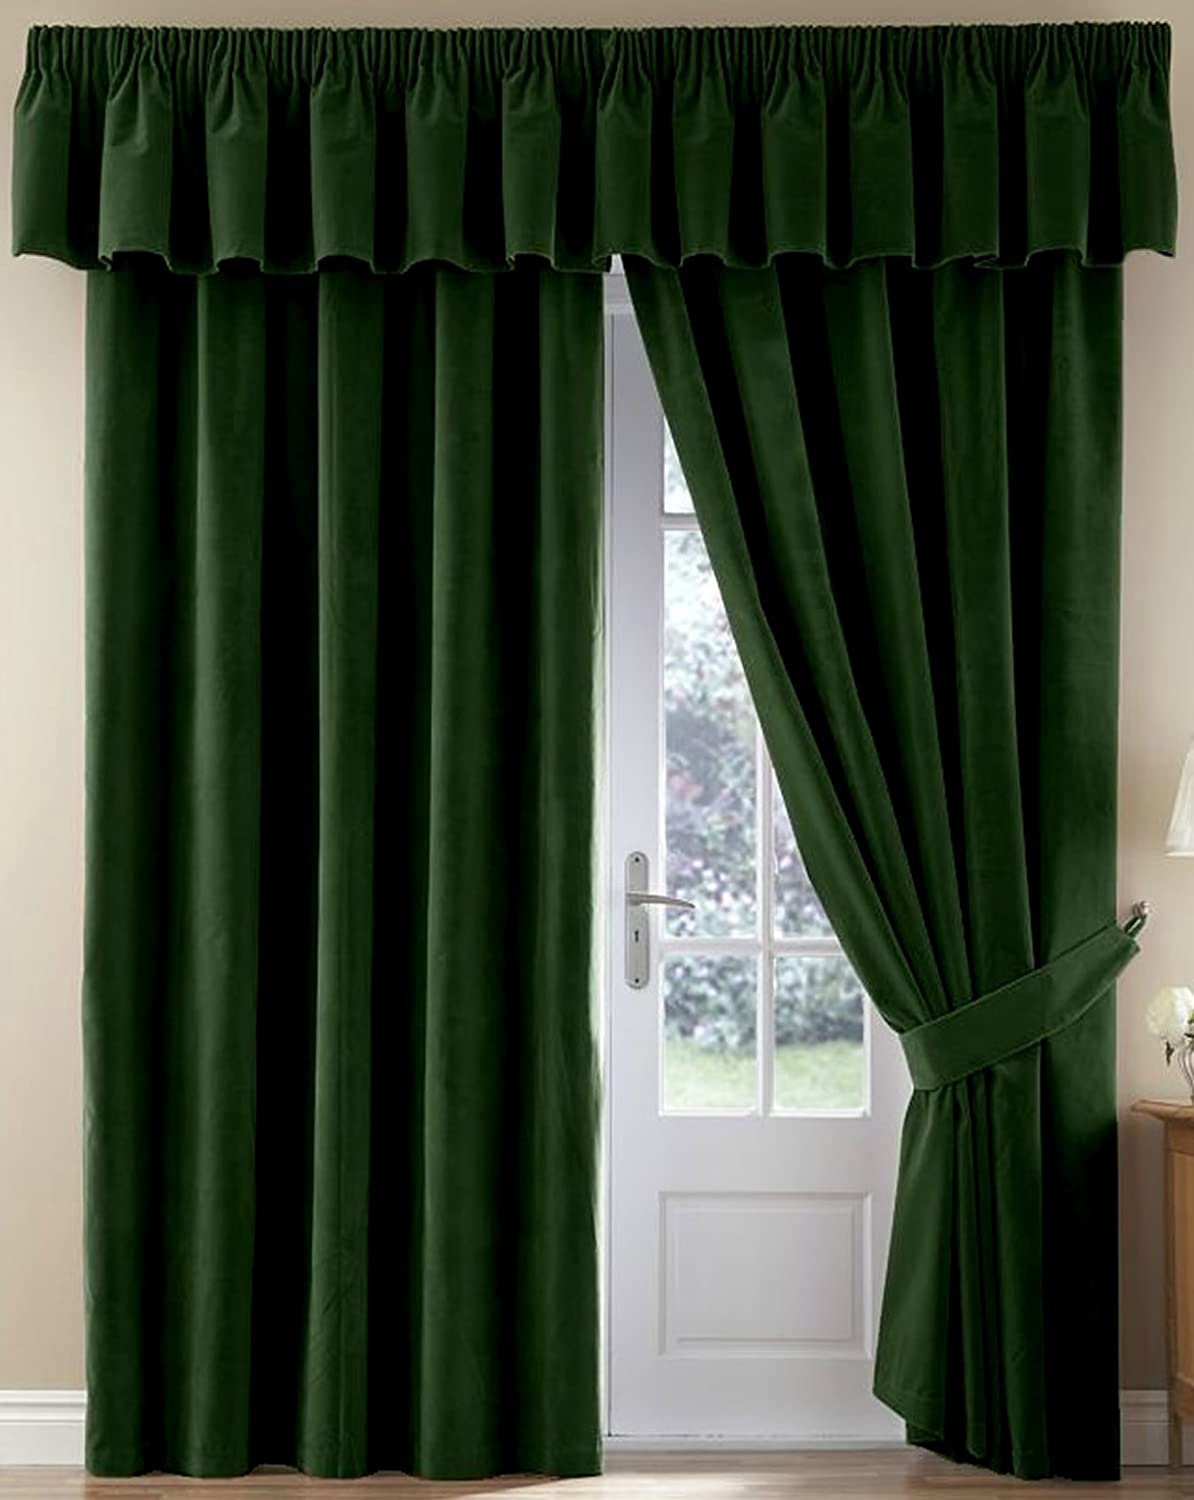 Kelly green velvet curtains - Thermal Velour Velvet Curtains Finished In Bottle Green 66 Wide X 72 Drop Amazon Co Uk Kitchen Home